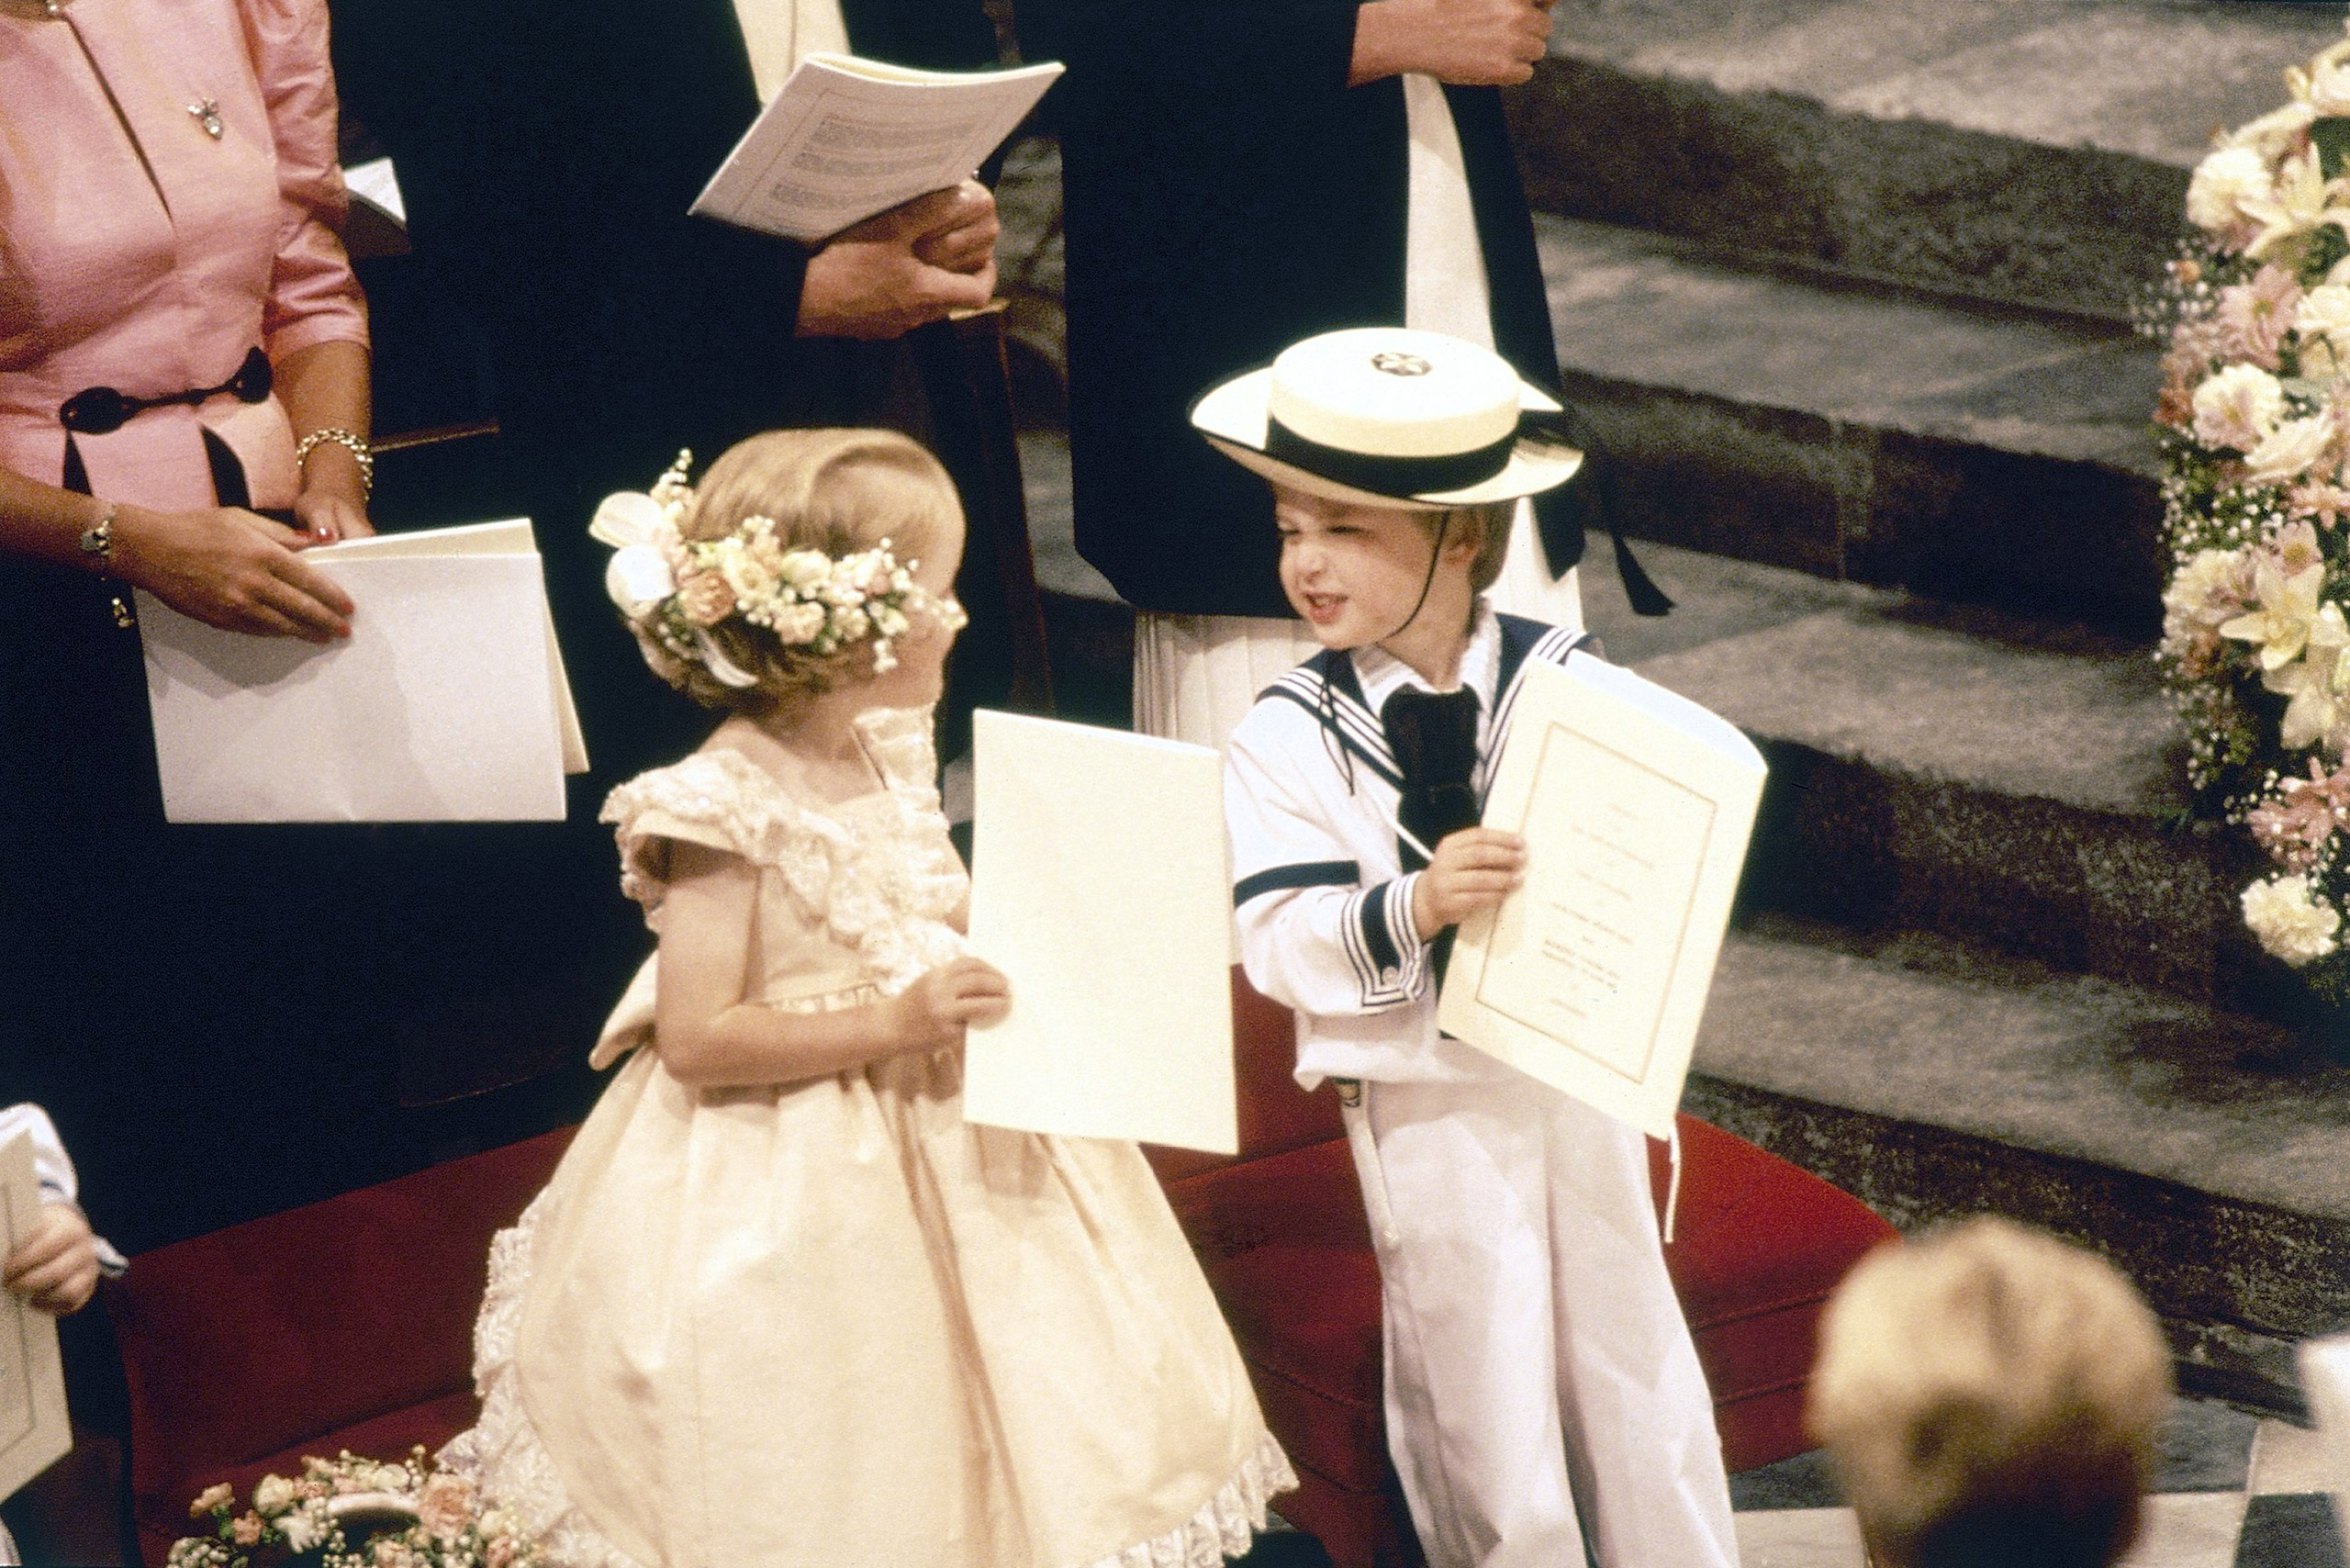 Four-year-old page Prince William of Wales exchanges glances with bridesmaid Laura Fellowes, 6, during the marriage of Prince Andrew and Sarah Ferguson at Westminster Abbey in London, July 23, 1986.